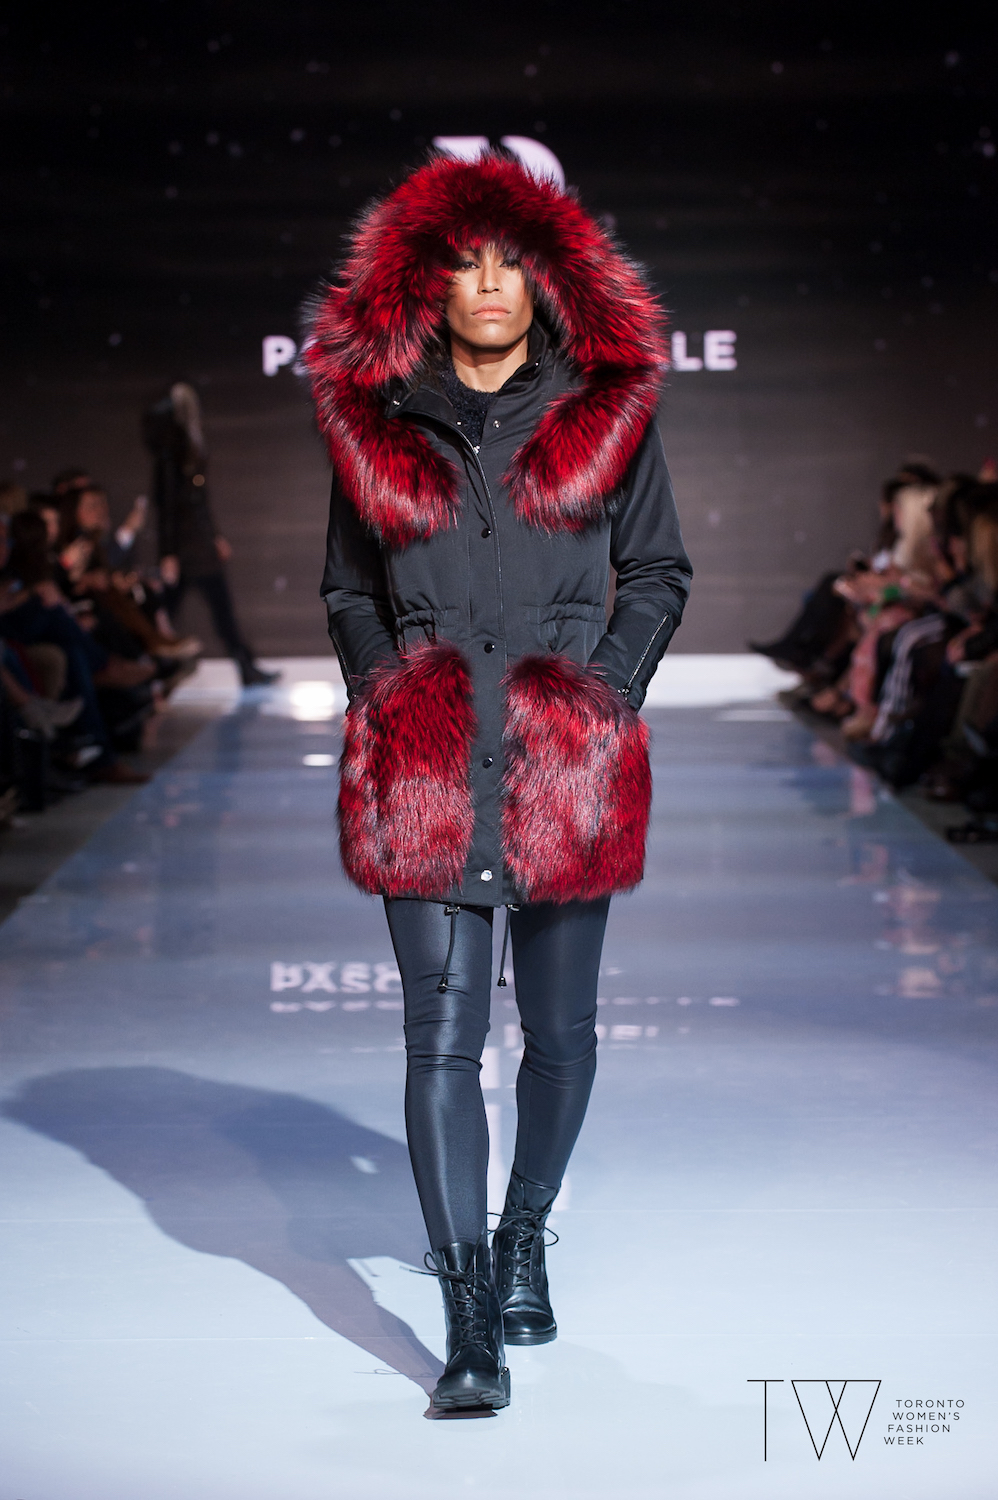 8f282-pascal_labelle-twfw-toronto-womens-fashion-week-photo-credit-che-rosales-womens-look-3.jpg